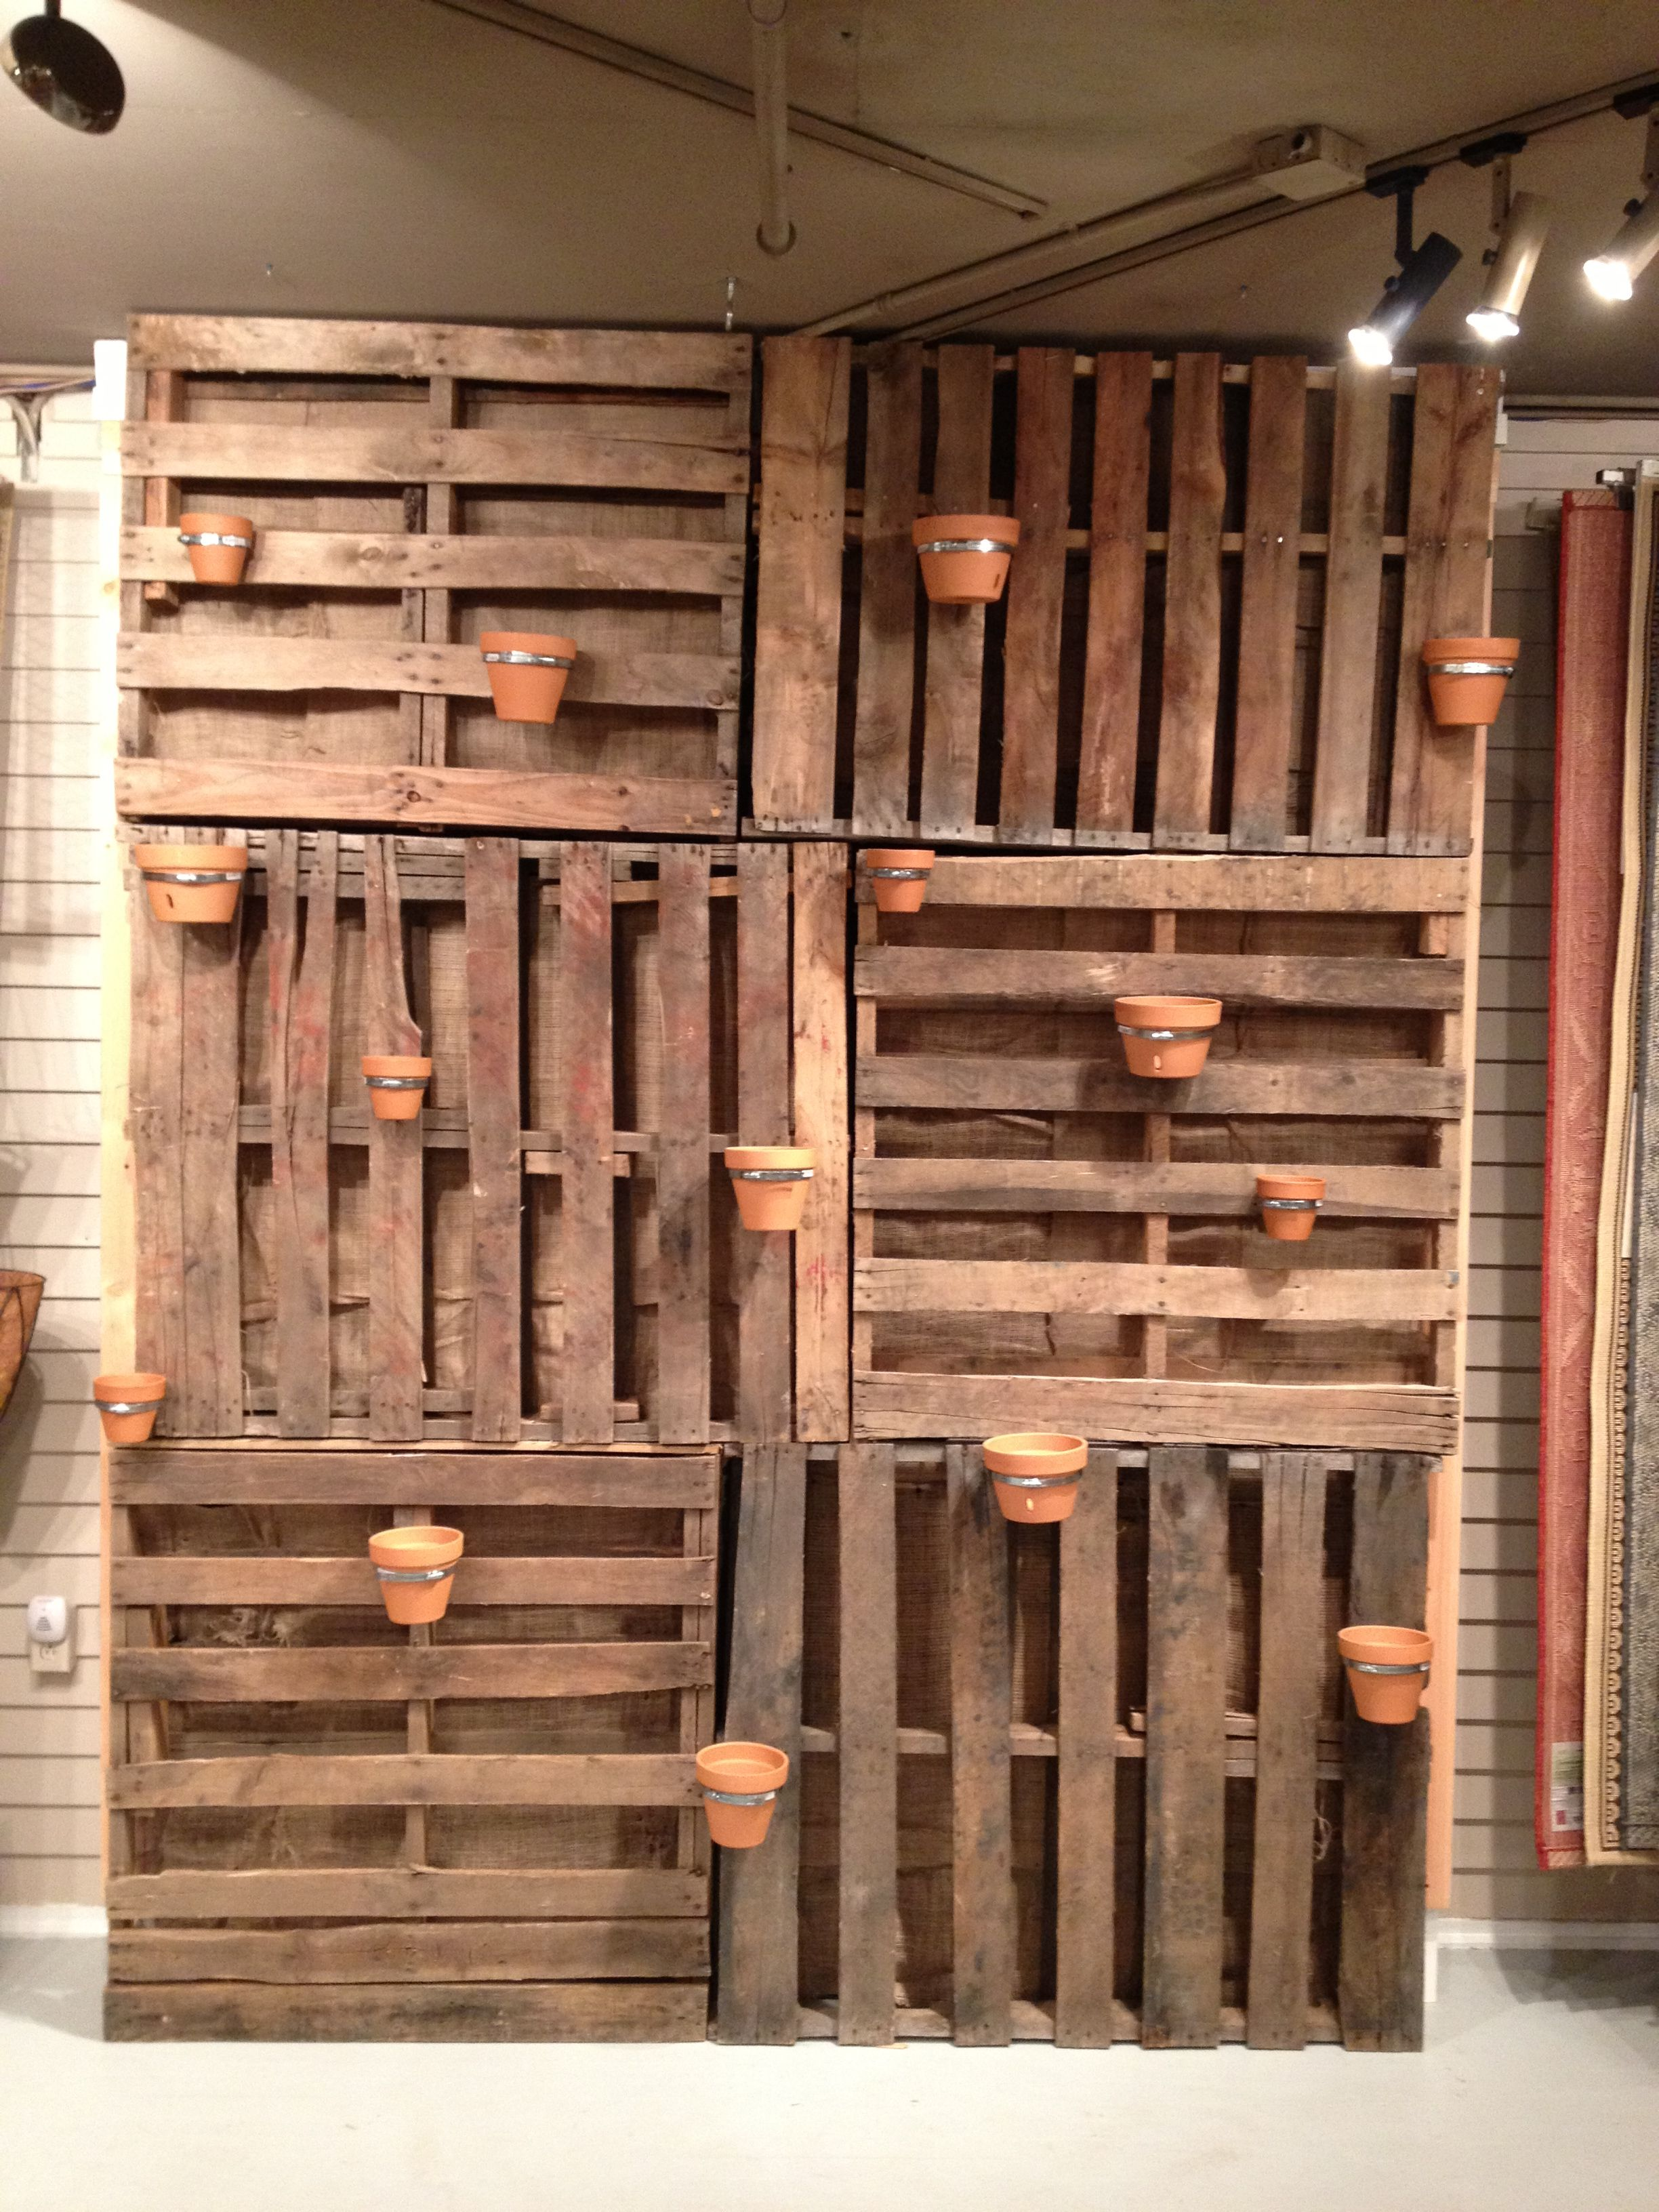 Garden wall made from pallets. Added air duct straps to suspend clay ...